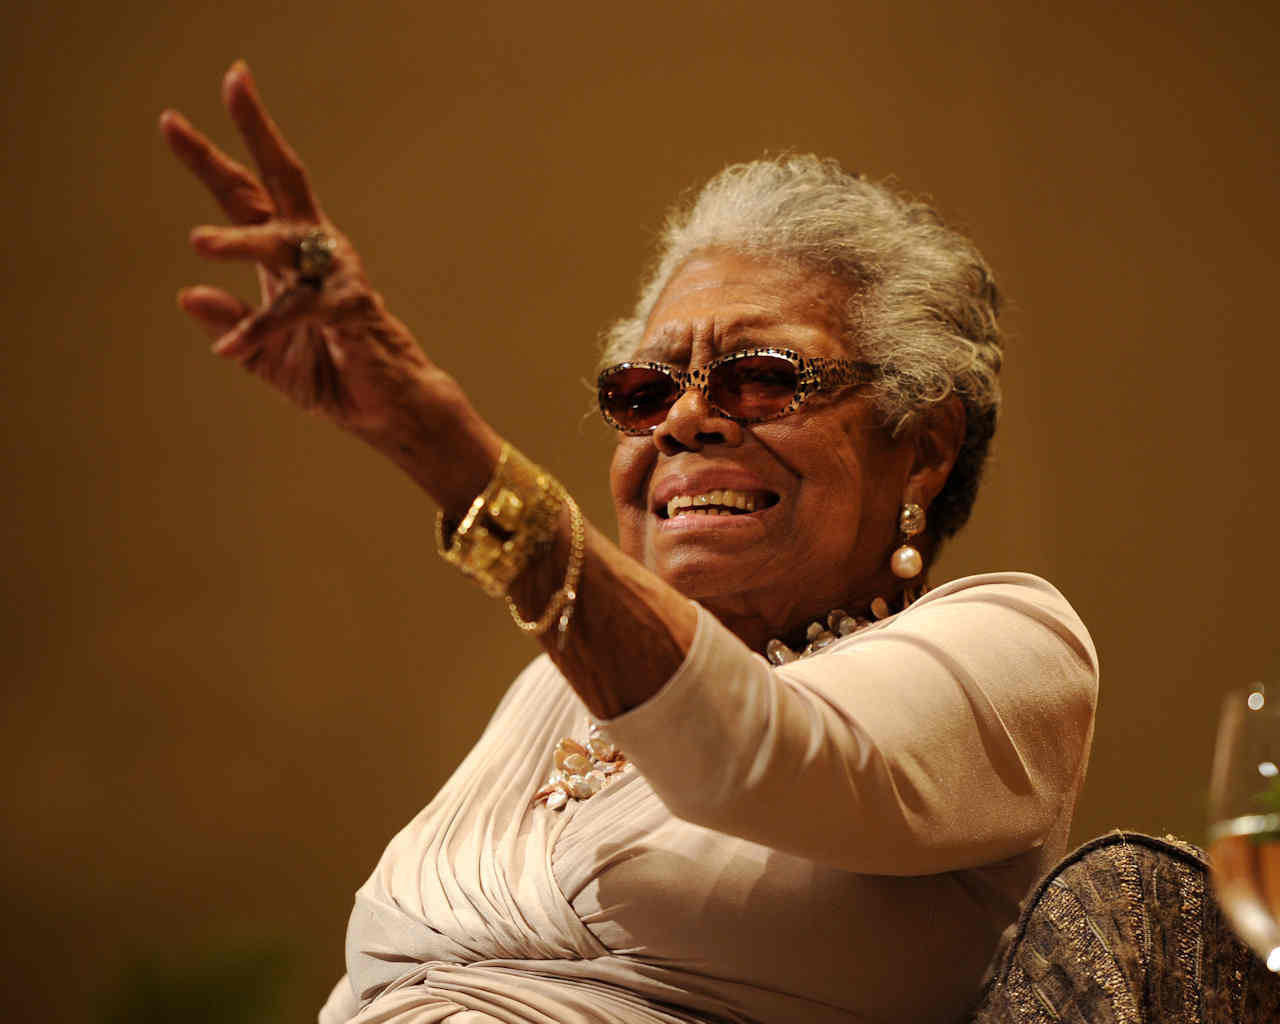 "<div class=""meta image-caption""><div class=""origin-logo origin-image ""><span></span></div><span class=""caption-text"">Maya Angelou speaks on race relations at Congregation B'nai Israel and Ebenezer Baptist Church on January 16, 2014 in Boca Raton, Florida. Angelou died on May 28 at the age of 86. ((Photo by Jeff Daly/Invision/AP))</span></div>"